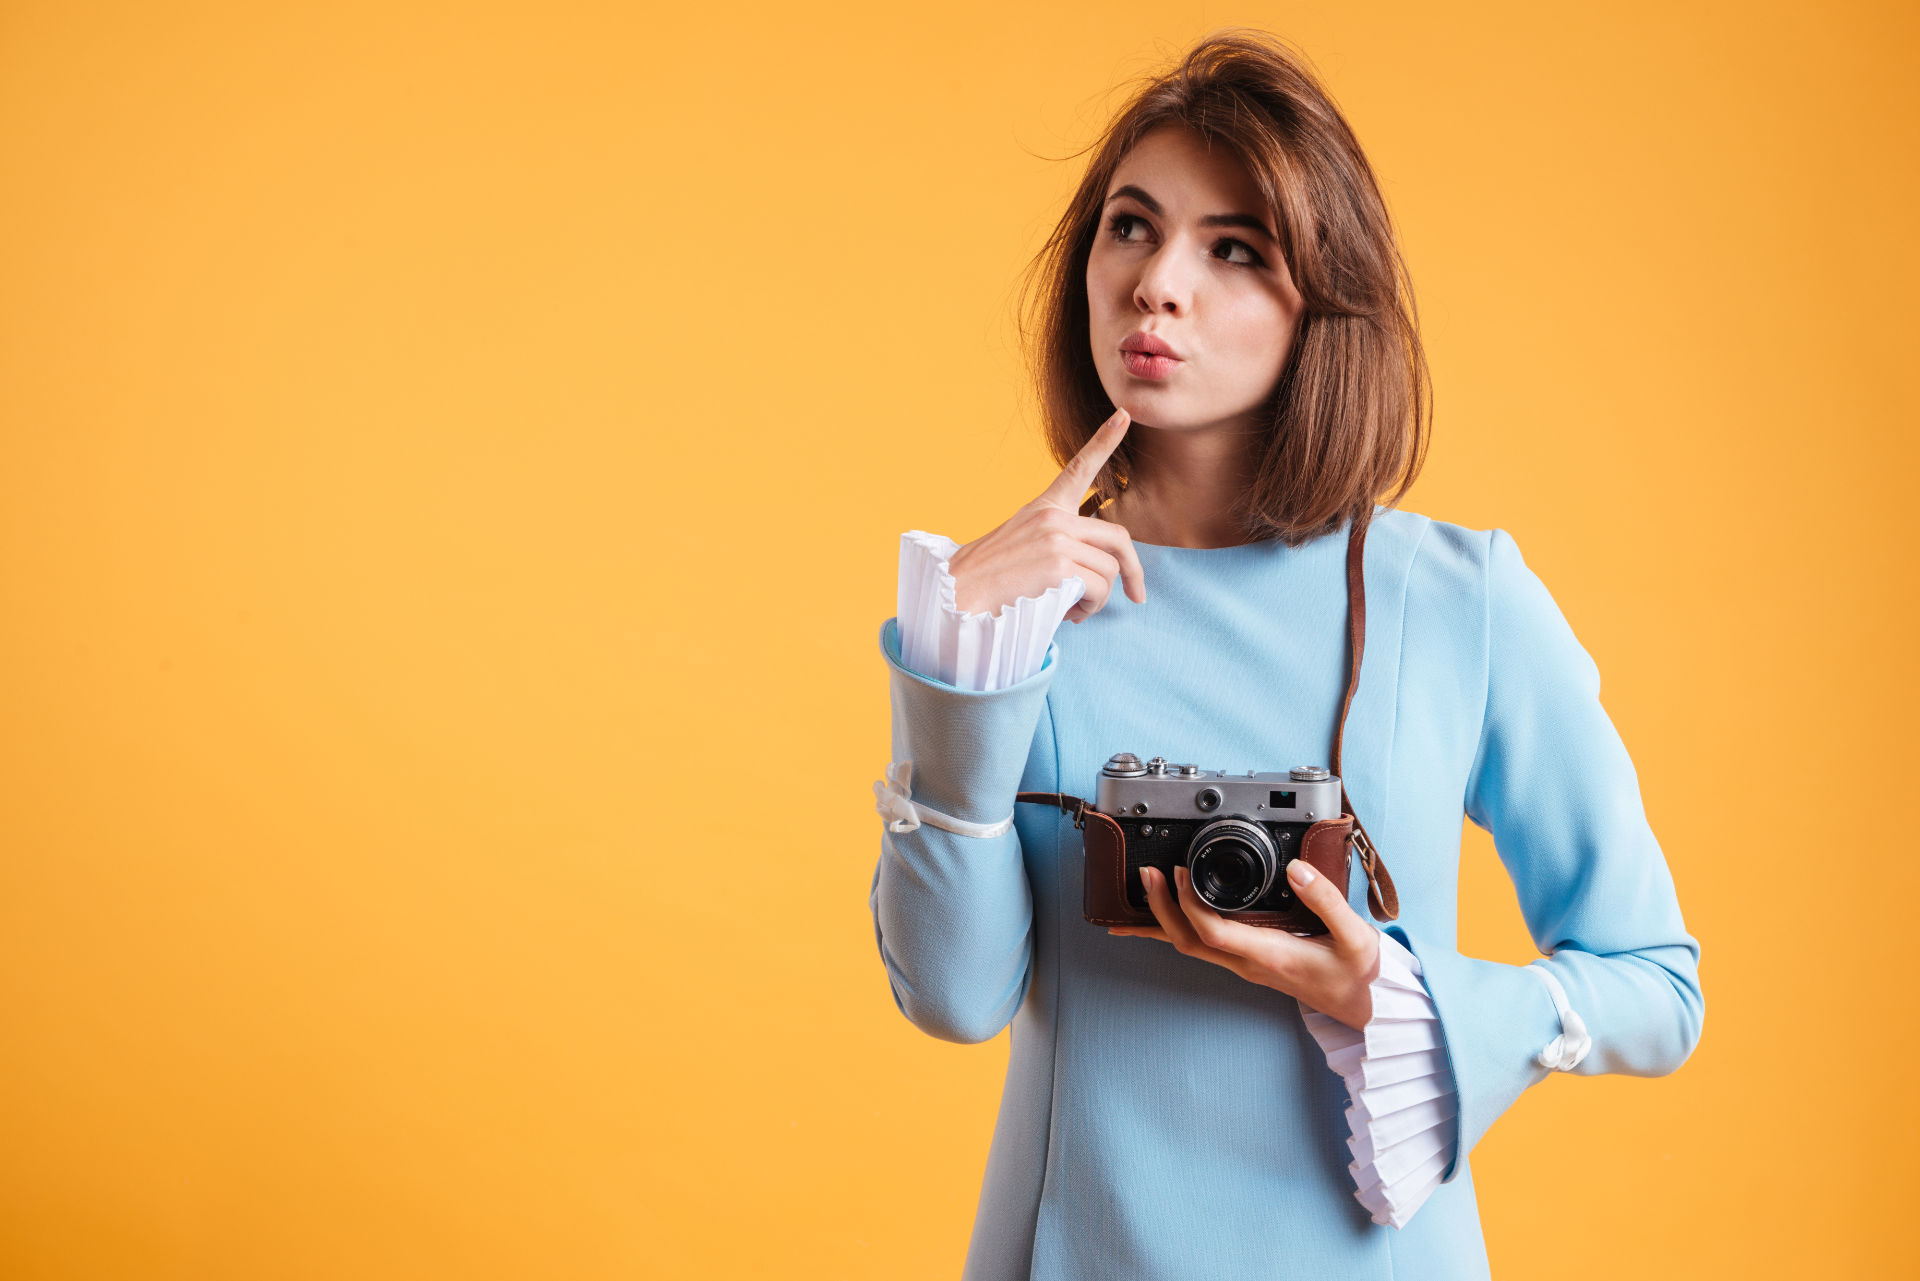 How to Start Your Own Photography Business